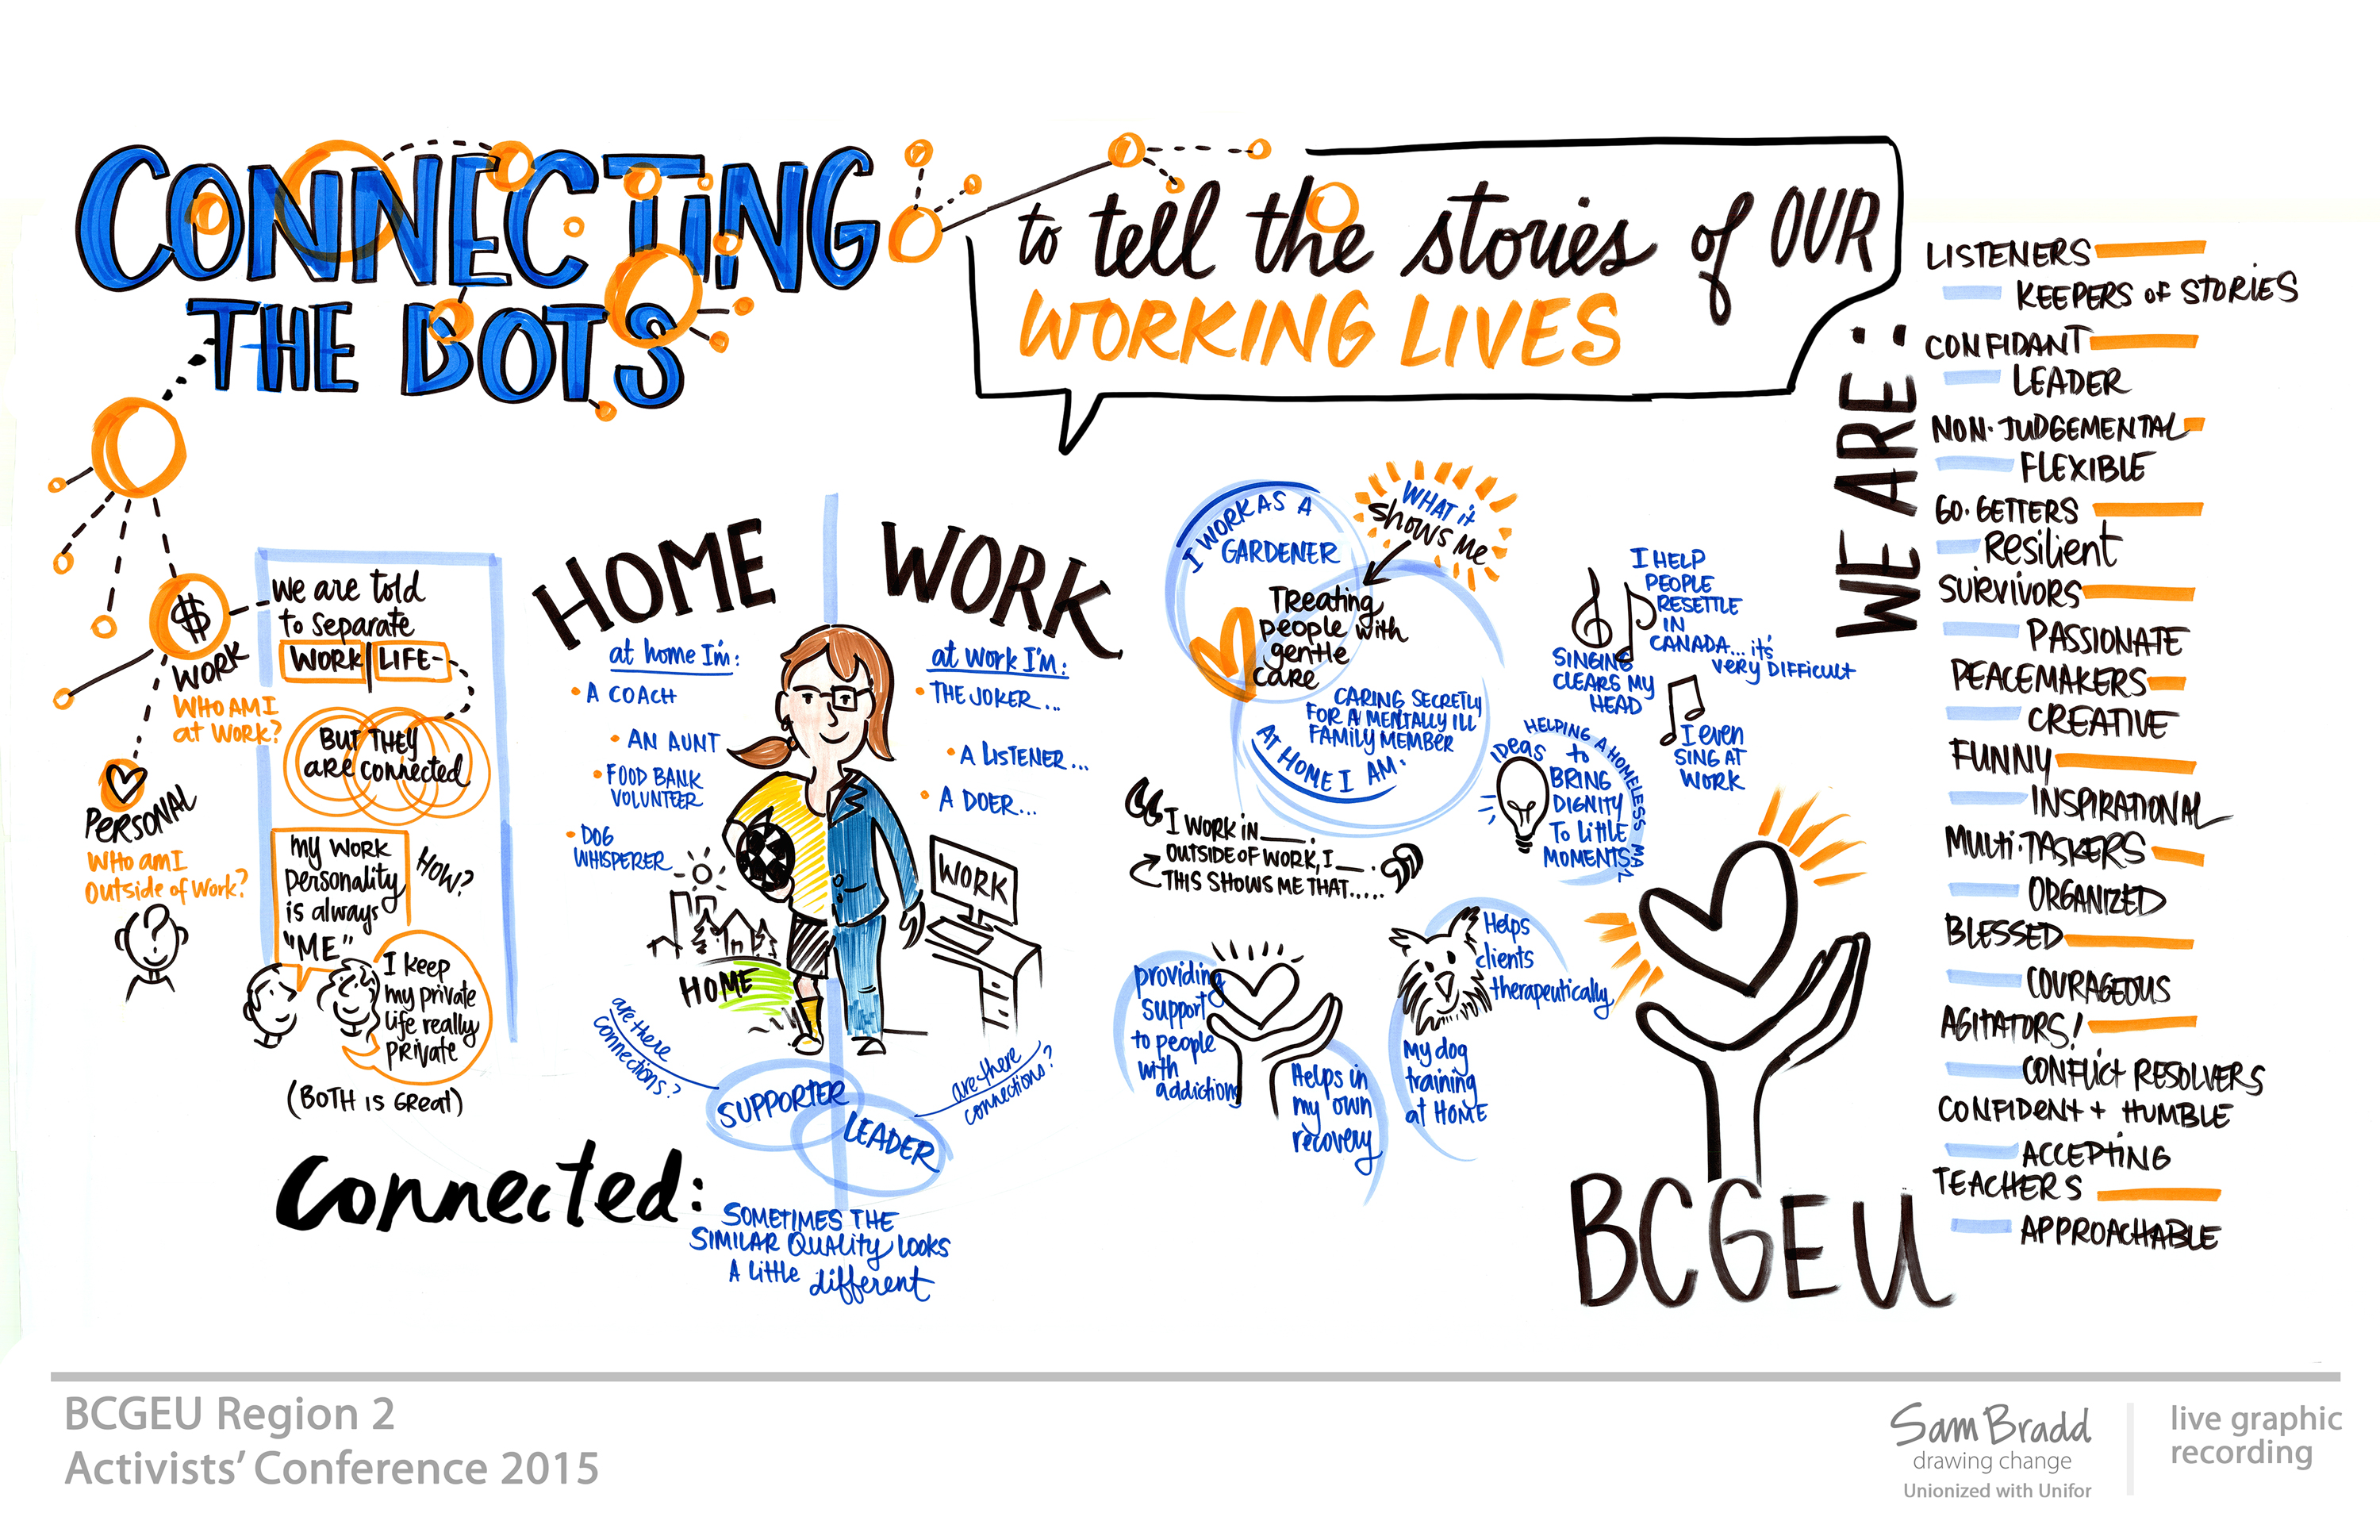 BCGEU connecting the dots graphic recording graphic facilitation conference visual storytelling sam bradd